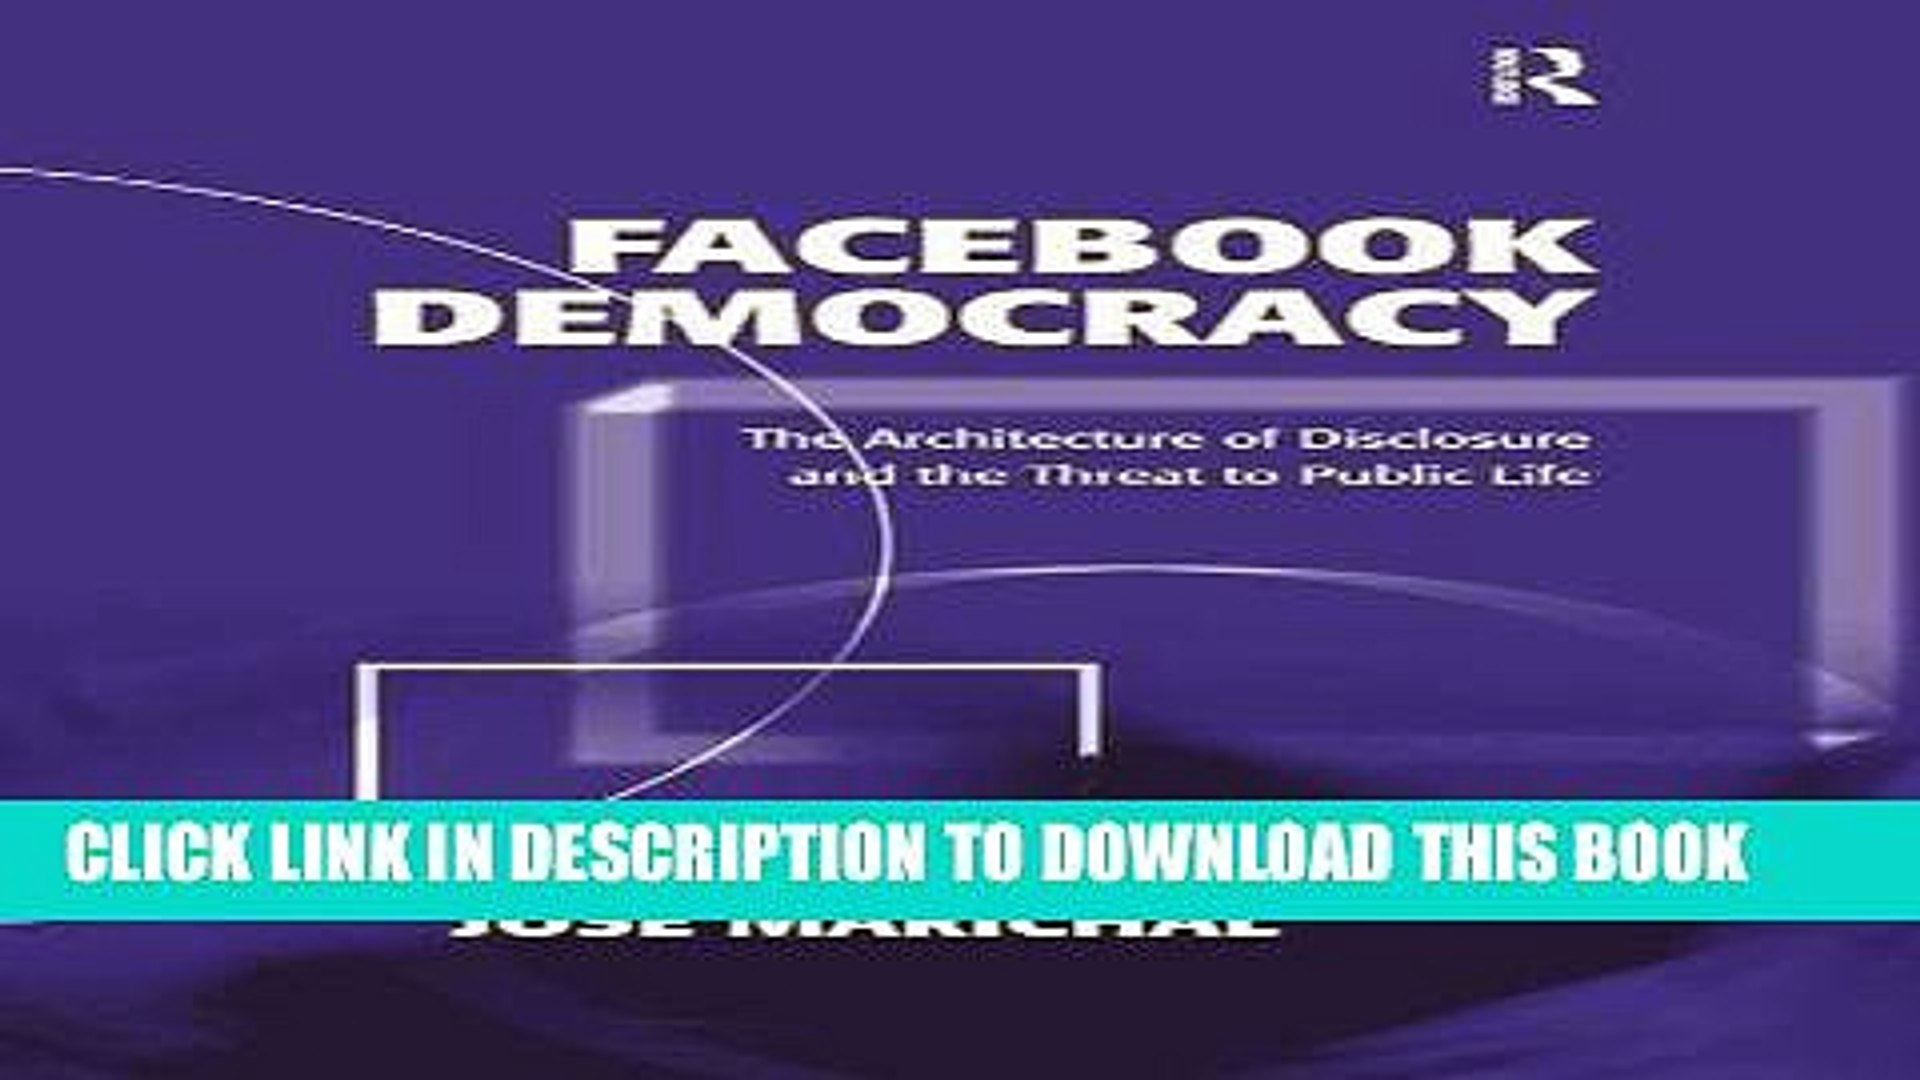 [PDF] Facebook Democracy: The Architecture of Disclosure and the Threat to Public Life (Politics